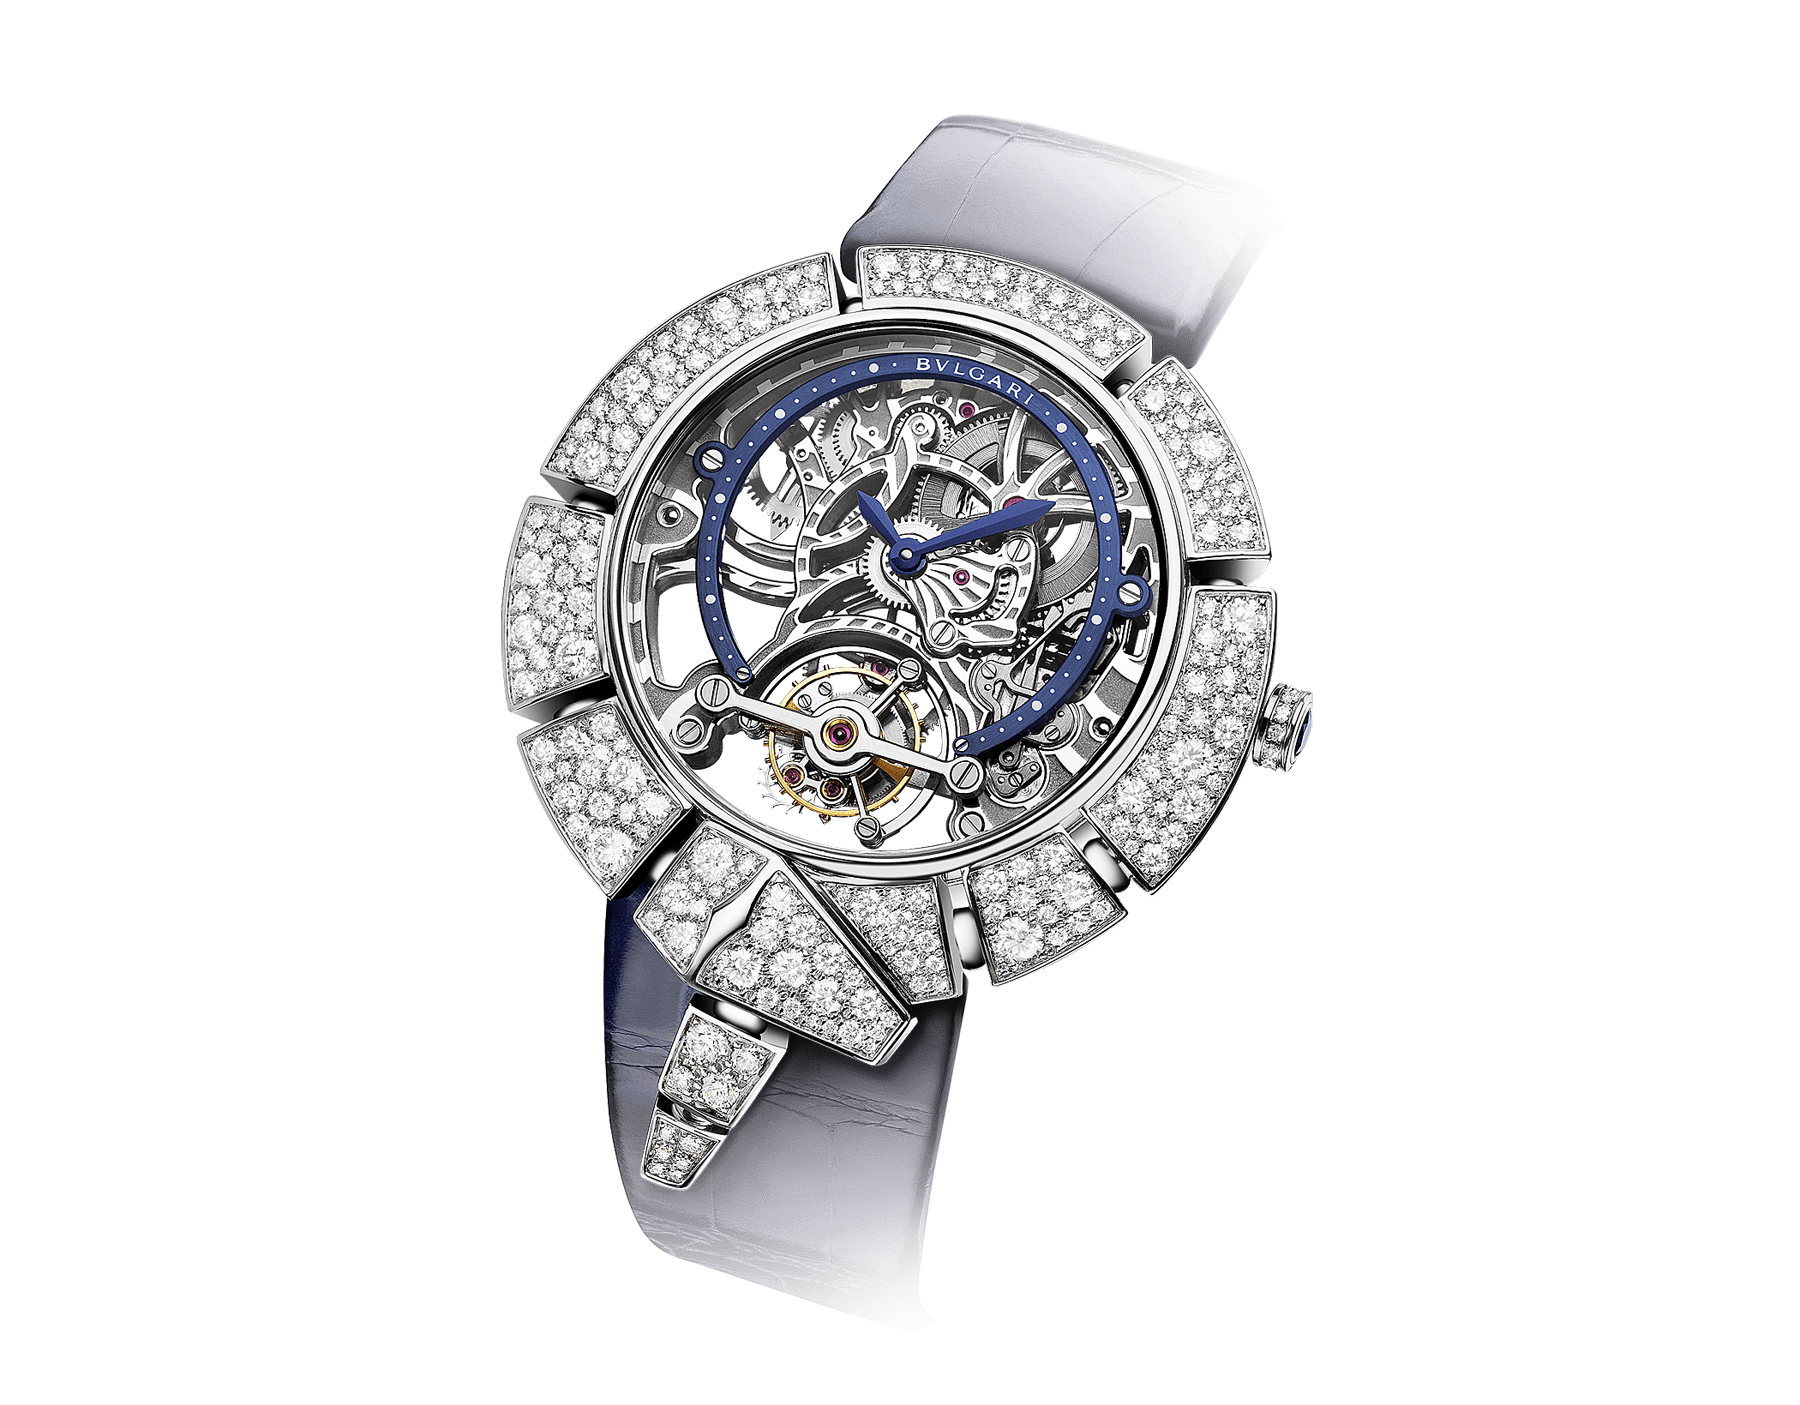 Serpenti Incantati Limited Edition watch with mechanical manufacture skeletonized movement, tourbillon and manual winding. 18 kt white gold case set with brilliant cut diamonds, transparent dial and blue alligator bracelet. 102541 image 2